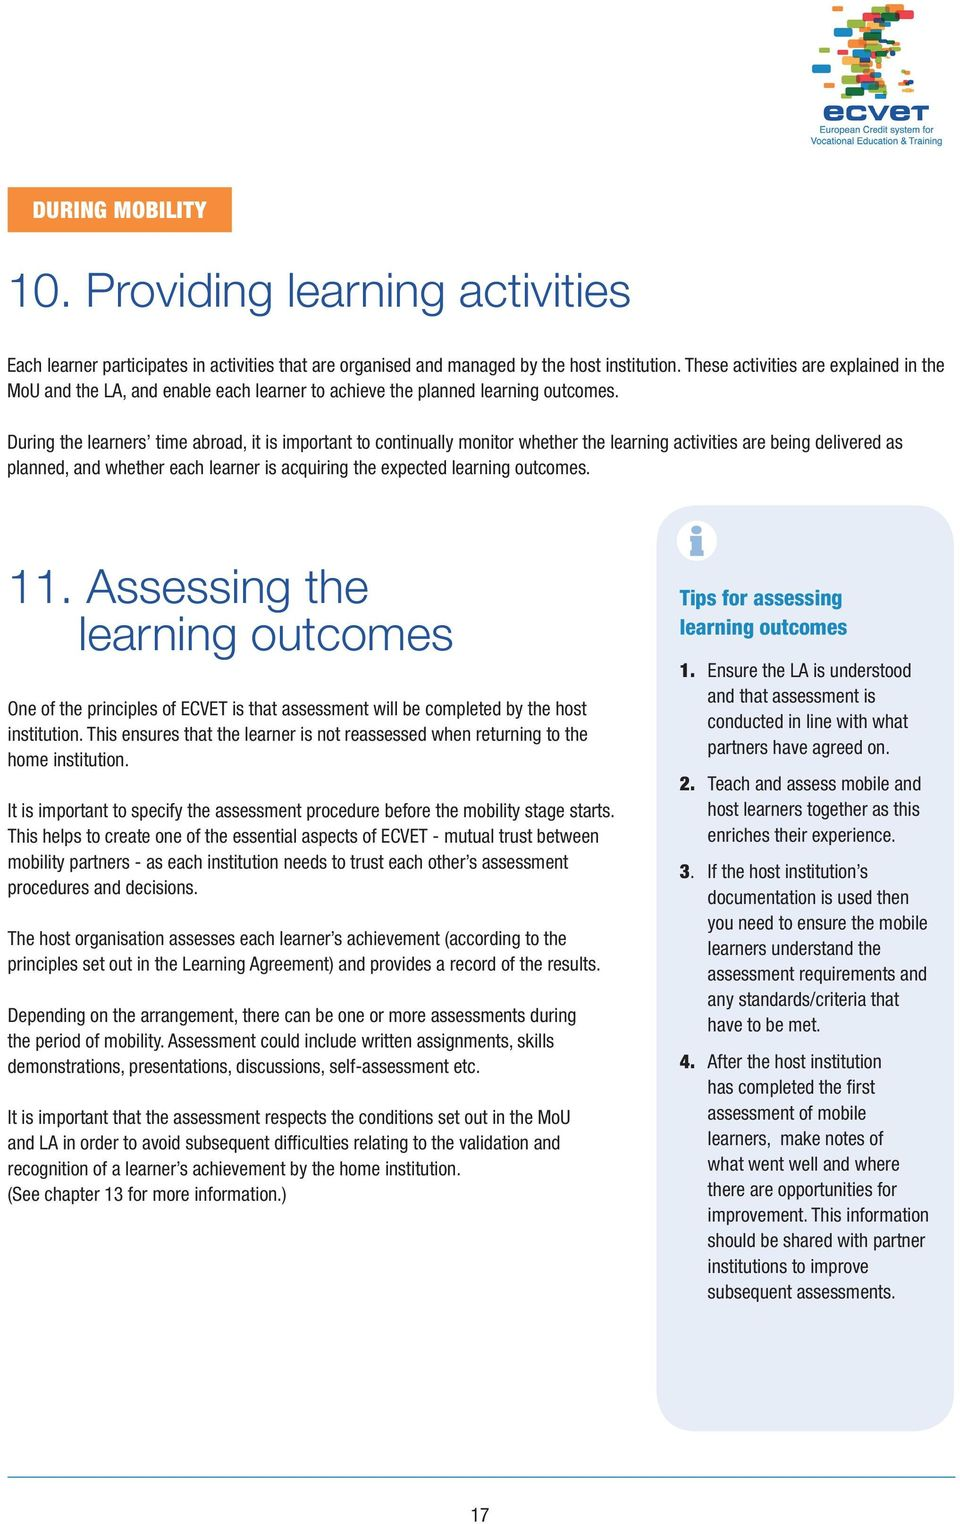 During the learners time abroad, it is important to continually monitor whether the learning activities are being delivered as planned, and whether each learner is acquiring the expected learning